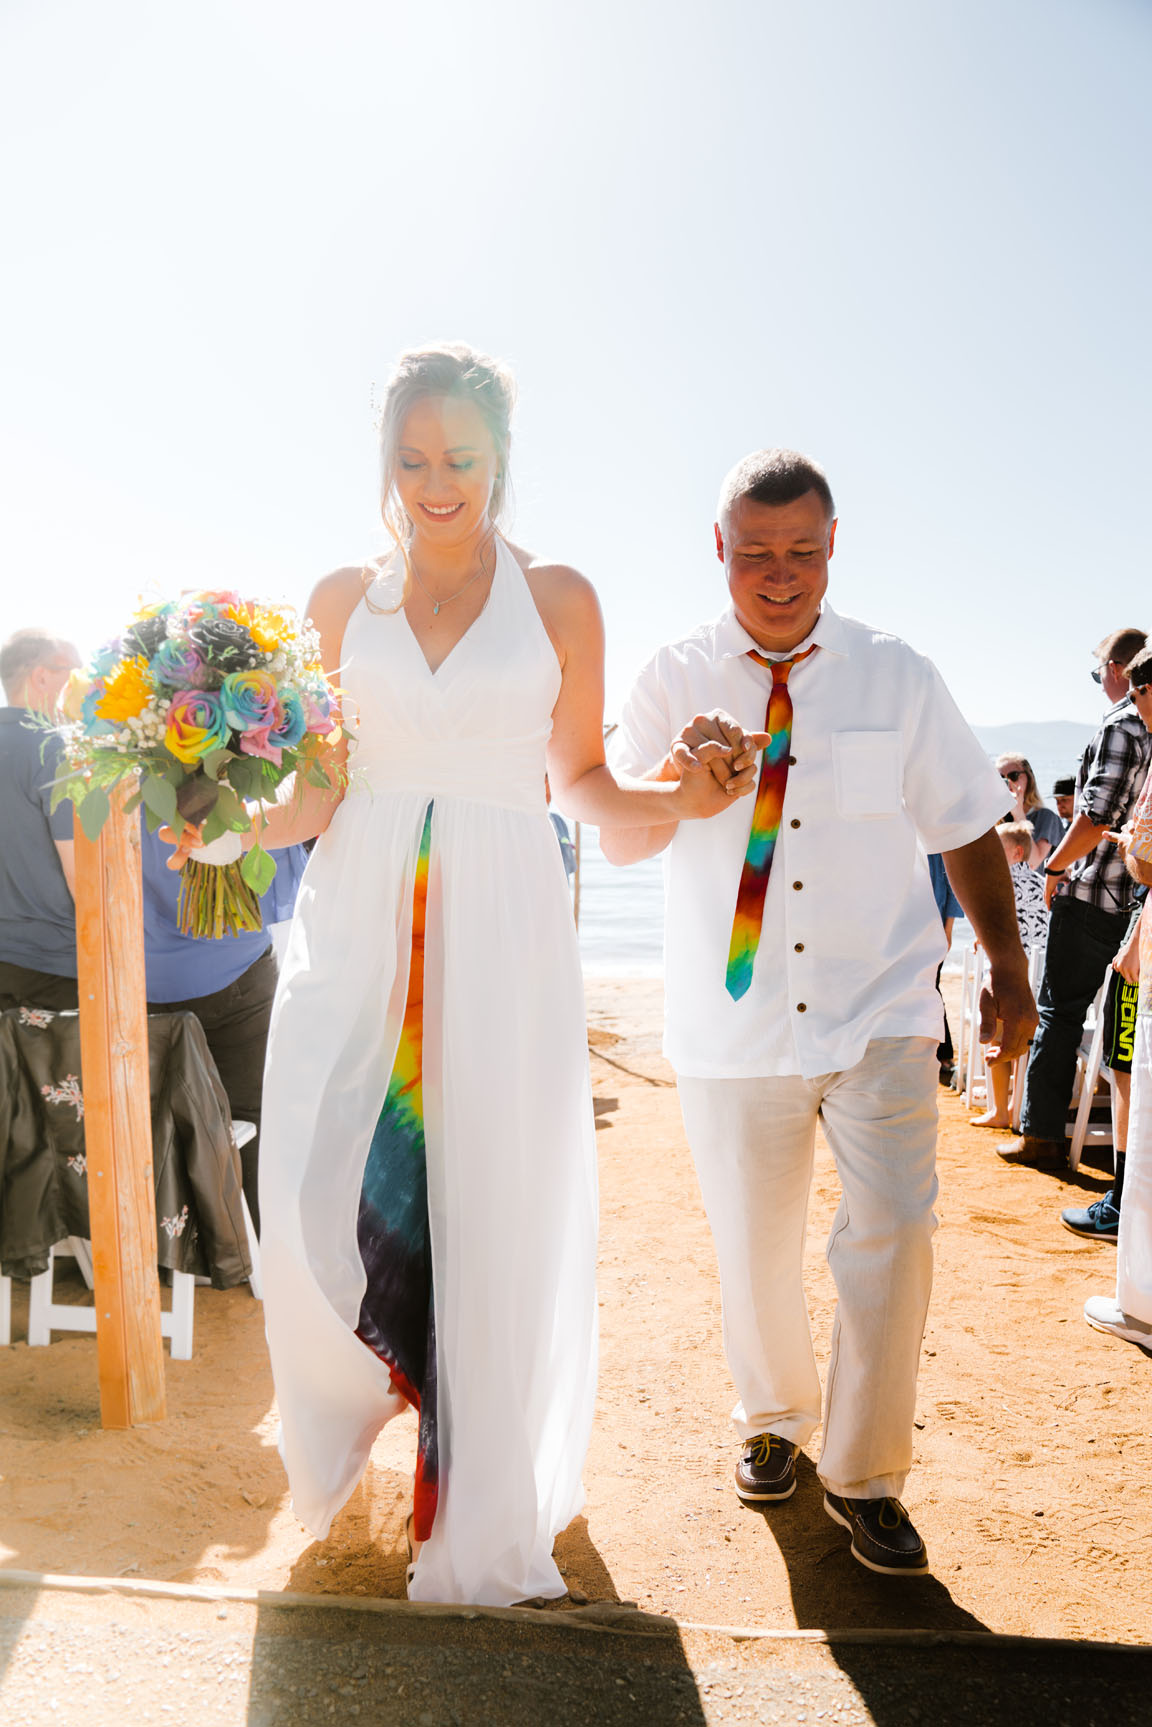 Lora and Scott South Lake Tahoe Wedding Zephyr Cove by Bessie Young Photography 2018-353.jpg